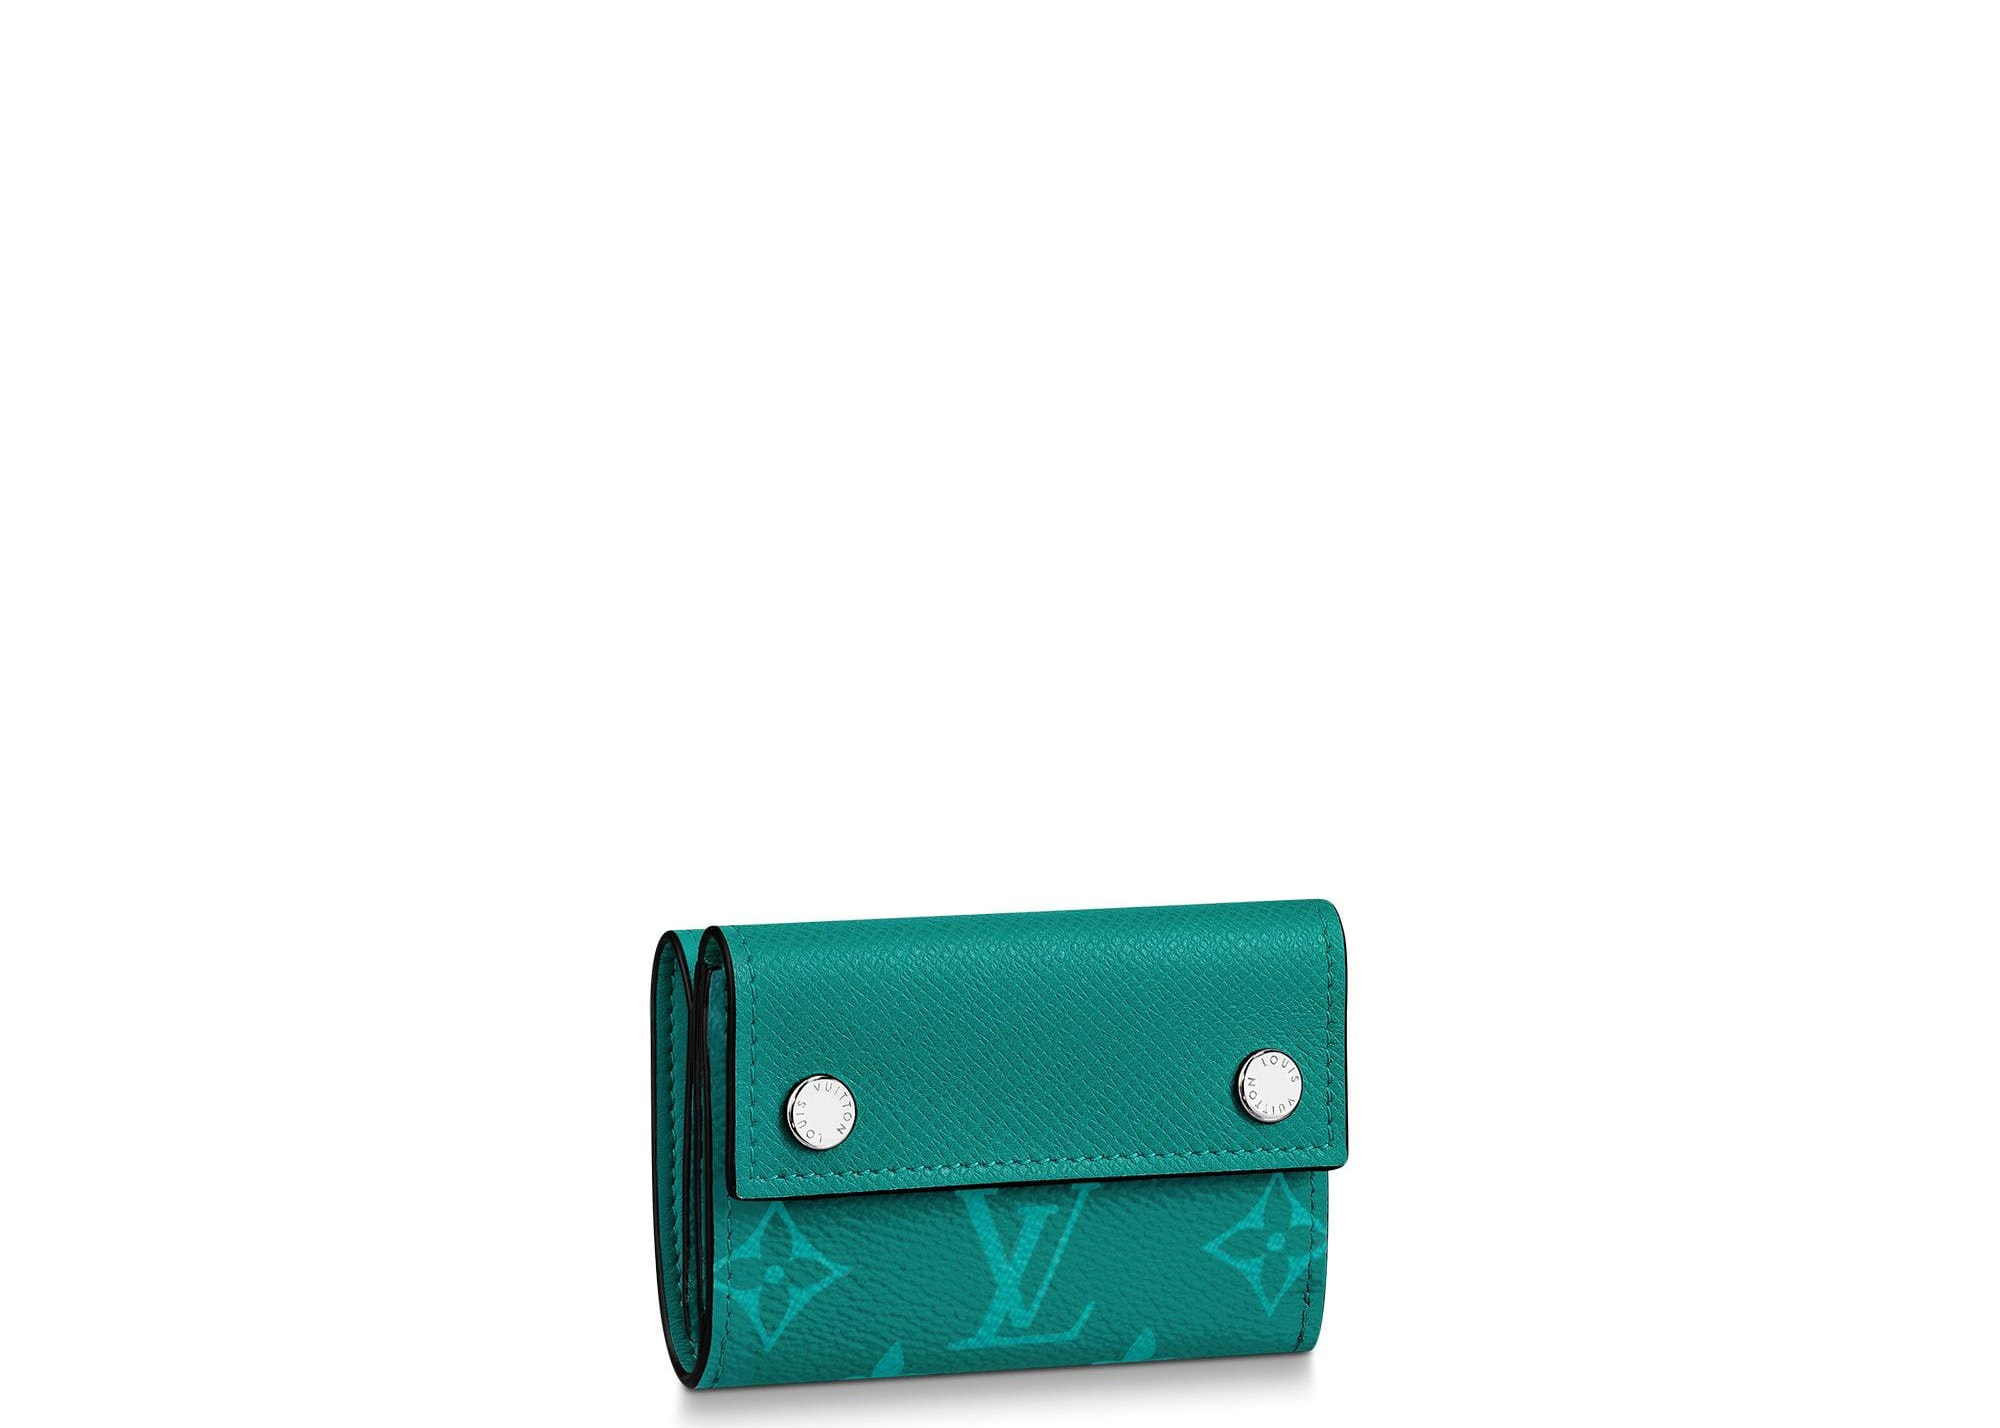 Louis Vuitton Discovery Compact Wallet Monogram Amazon Taiga Pine Green